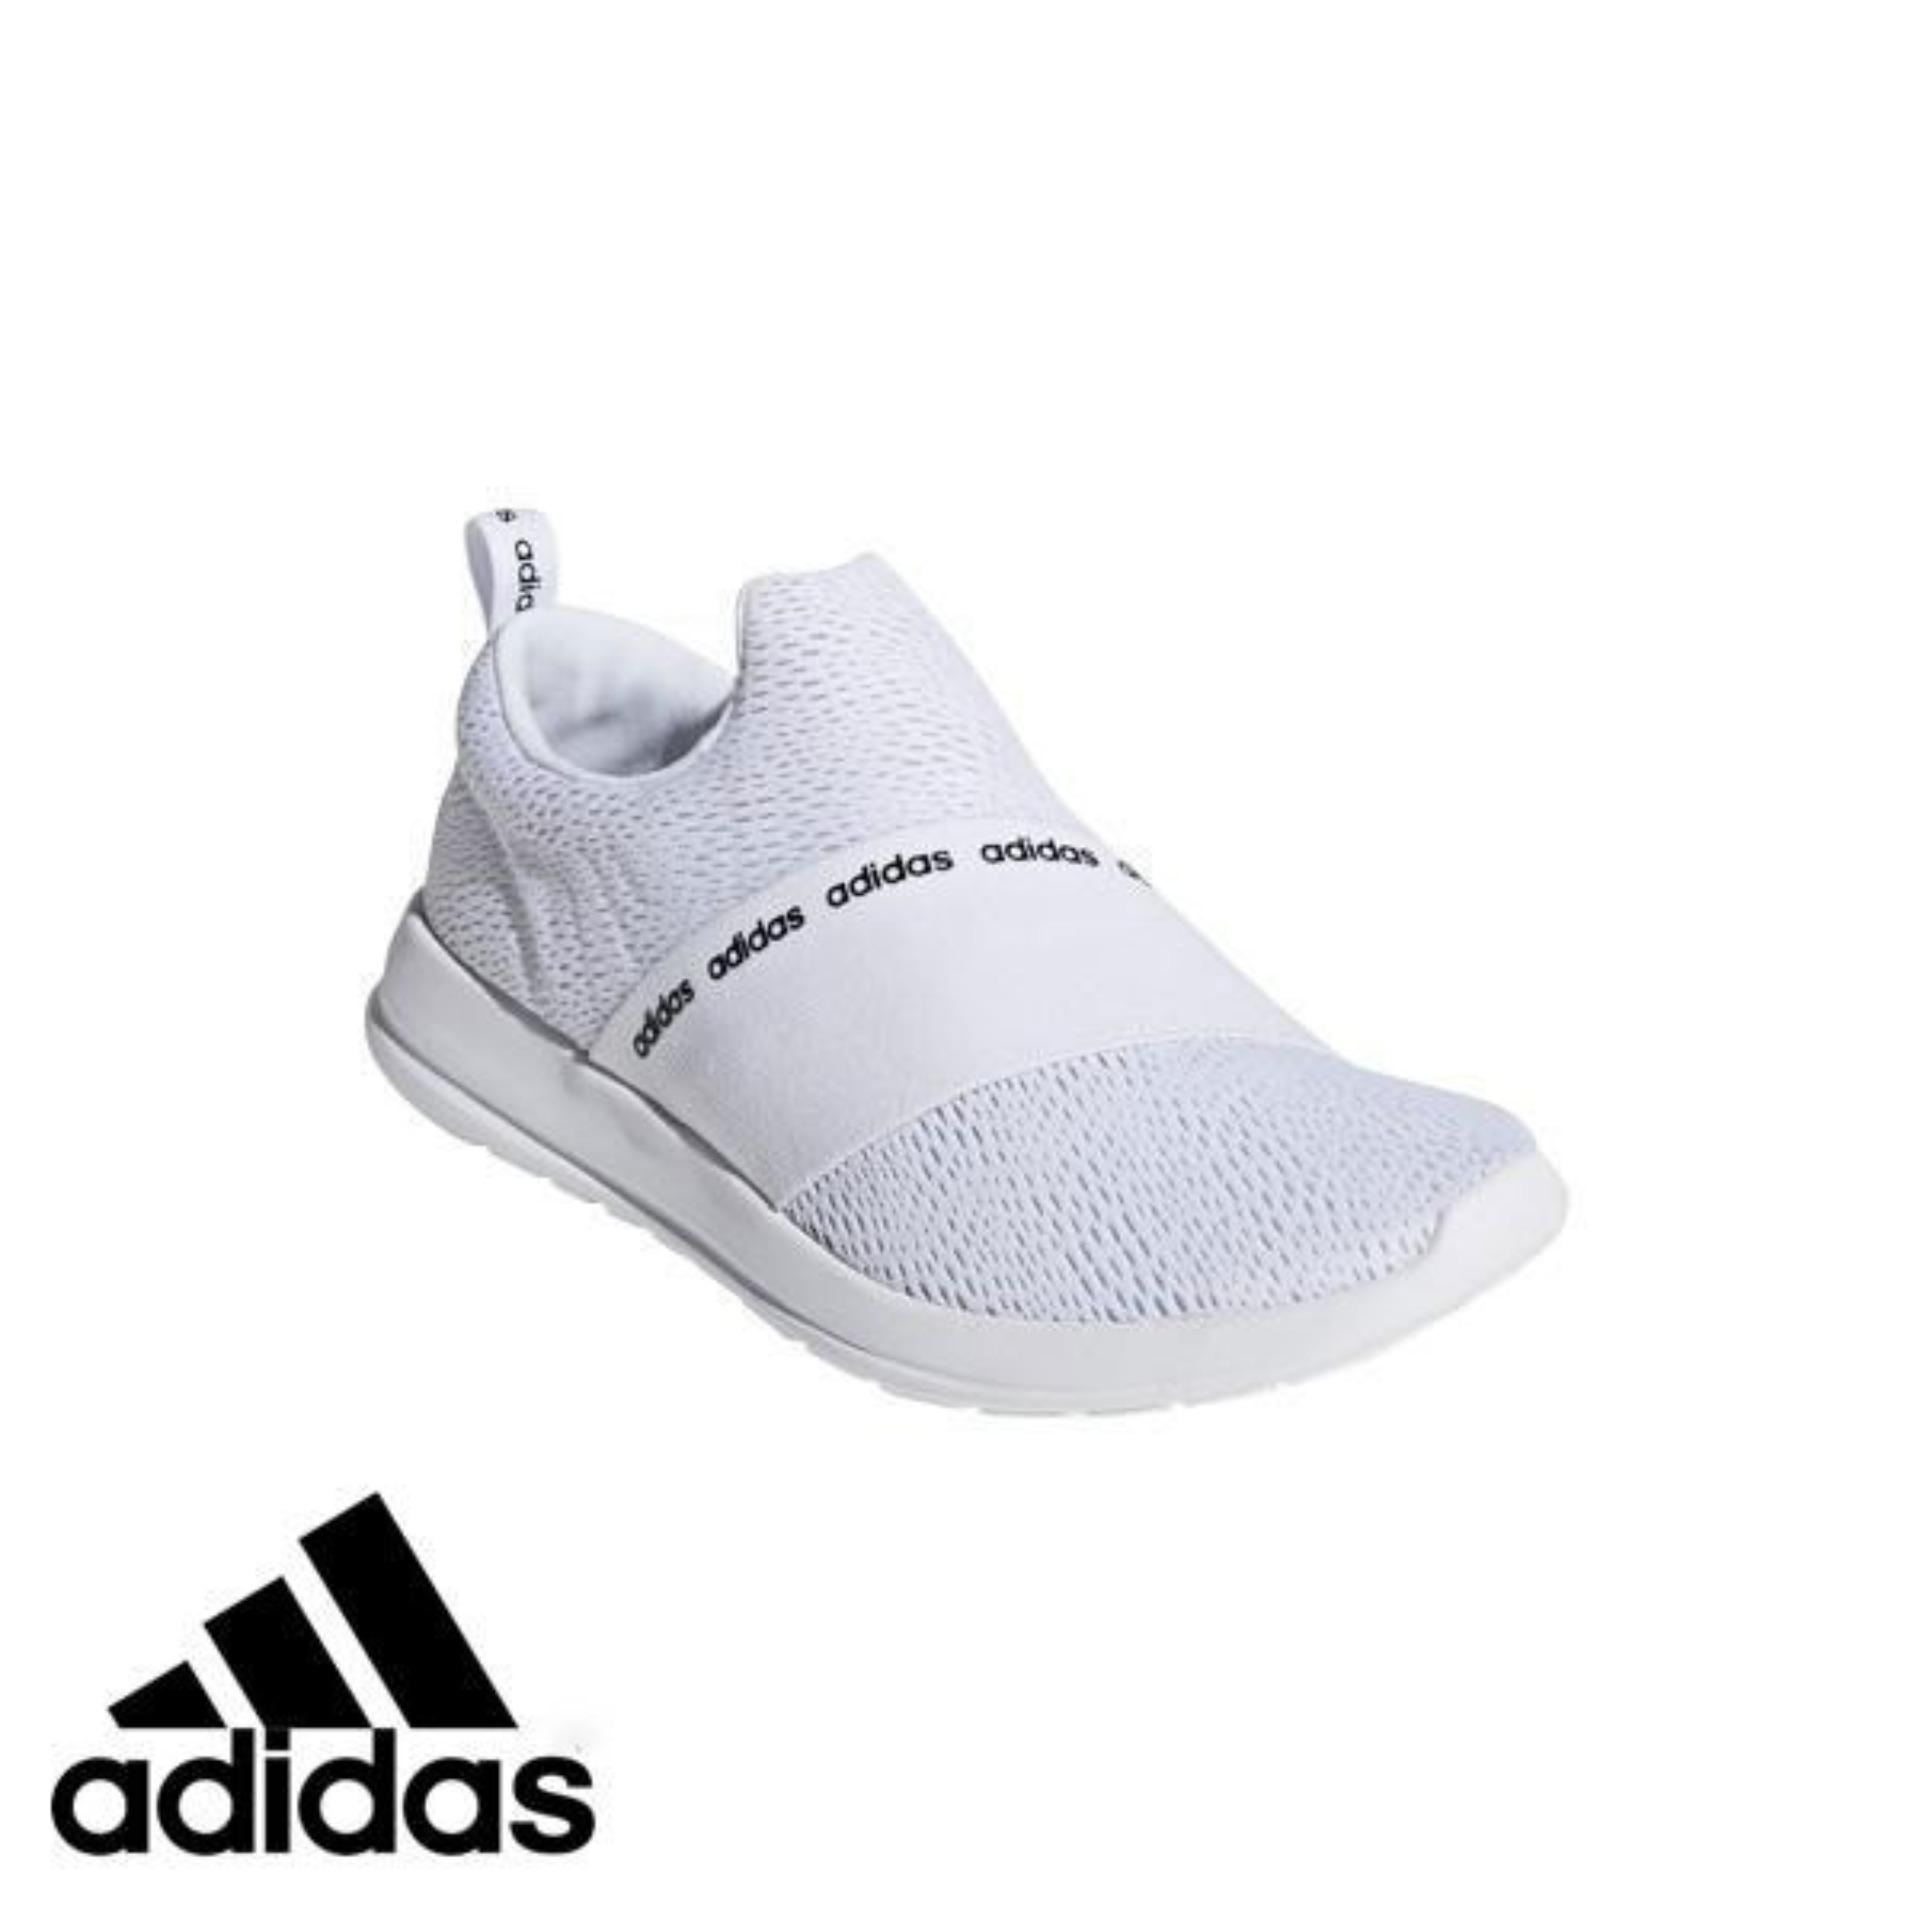 861b6574d6bc9 Adidas Sports Shoes Philippines - Adidas Sports Clothing for sale ...